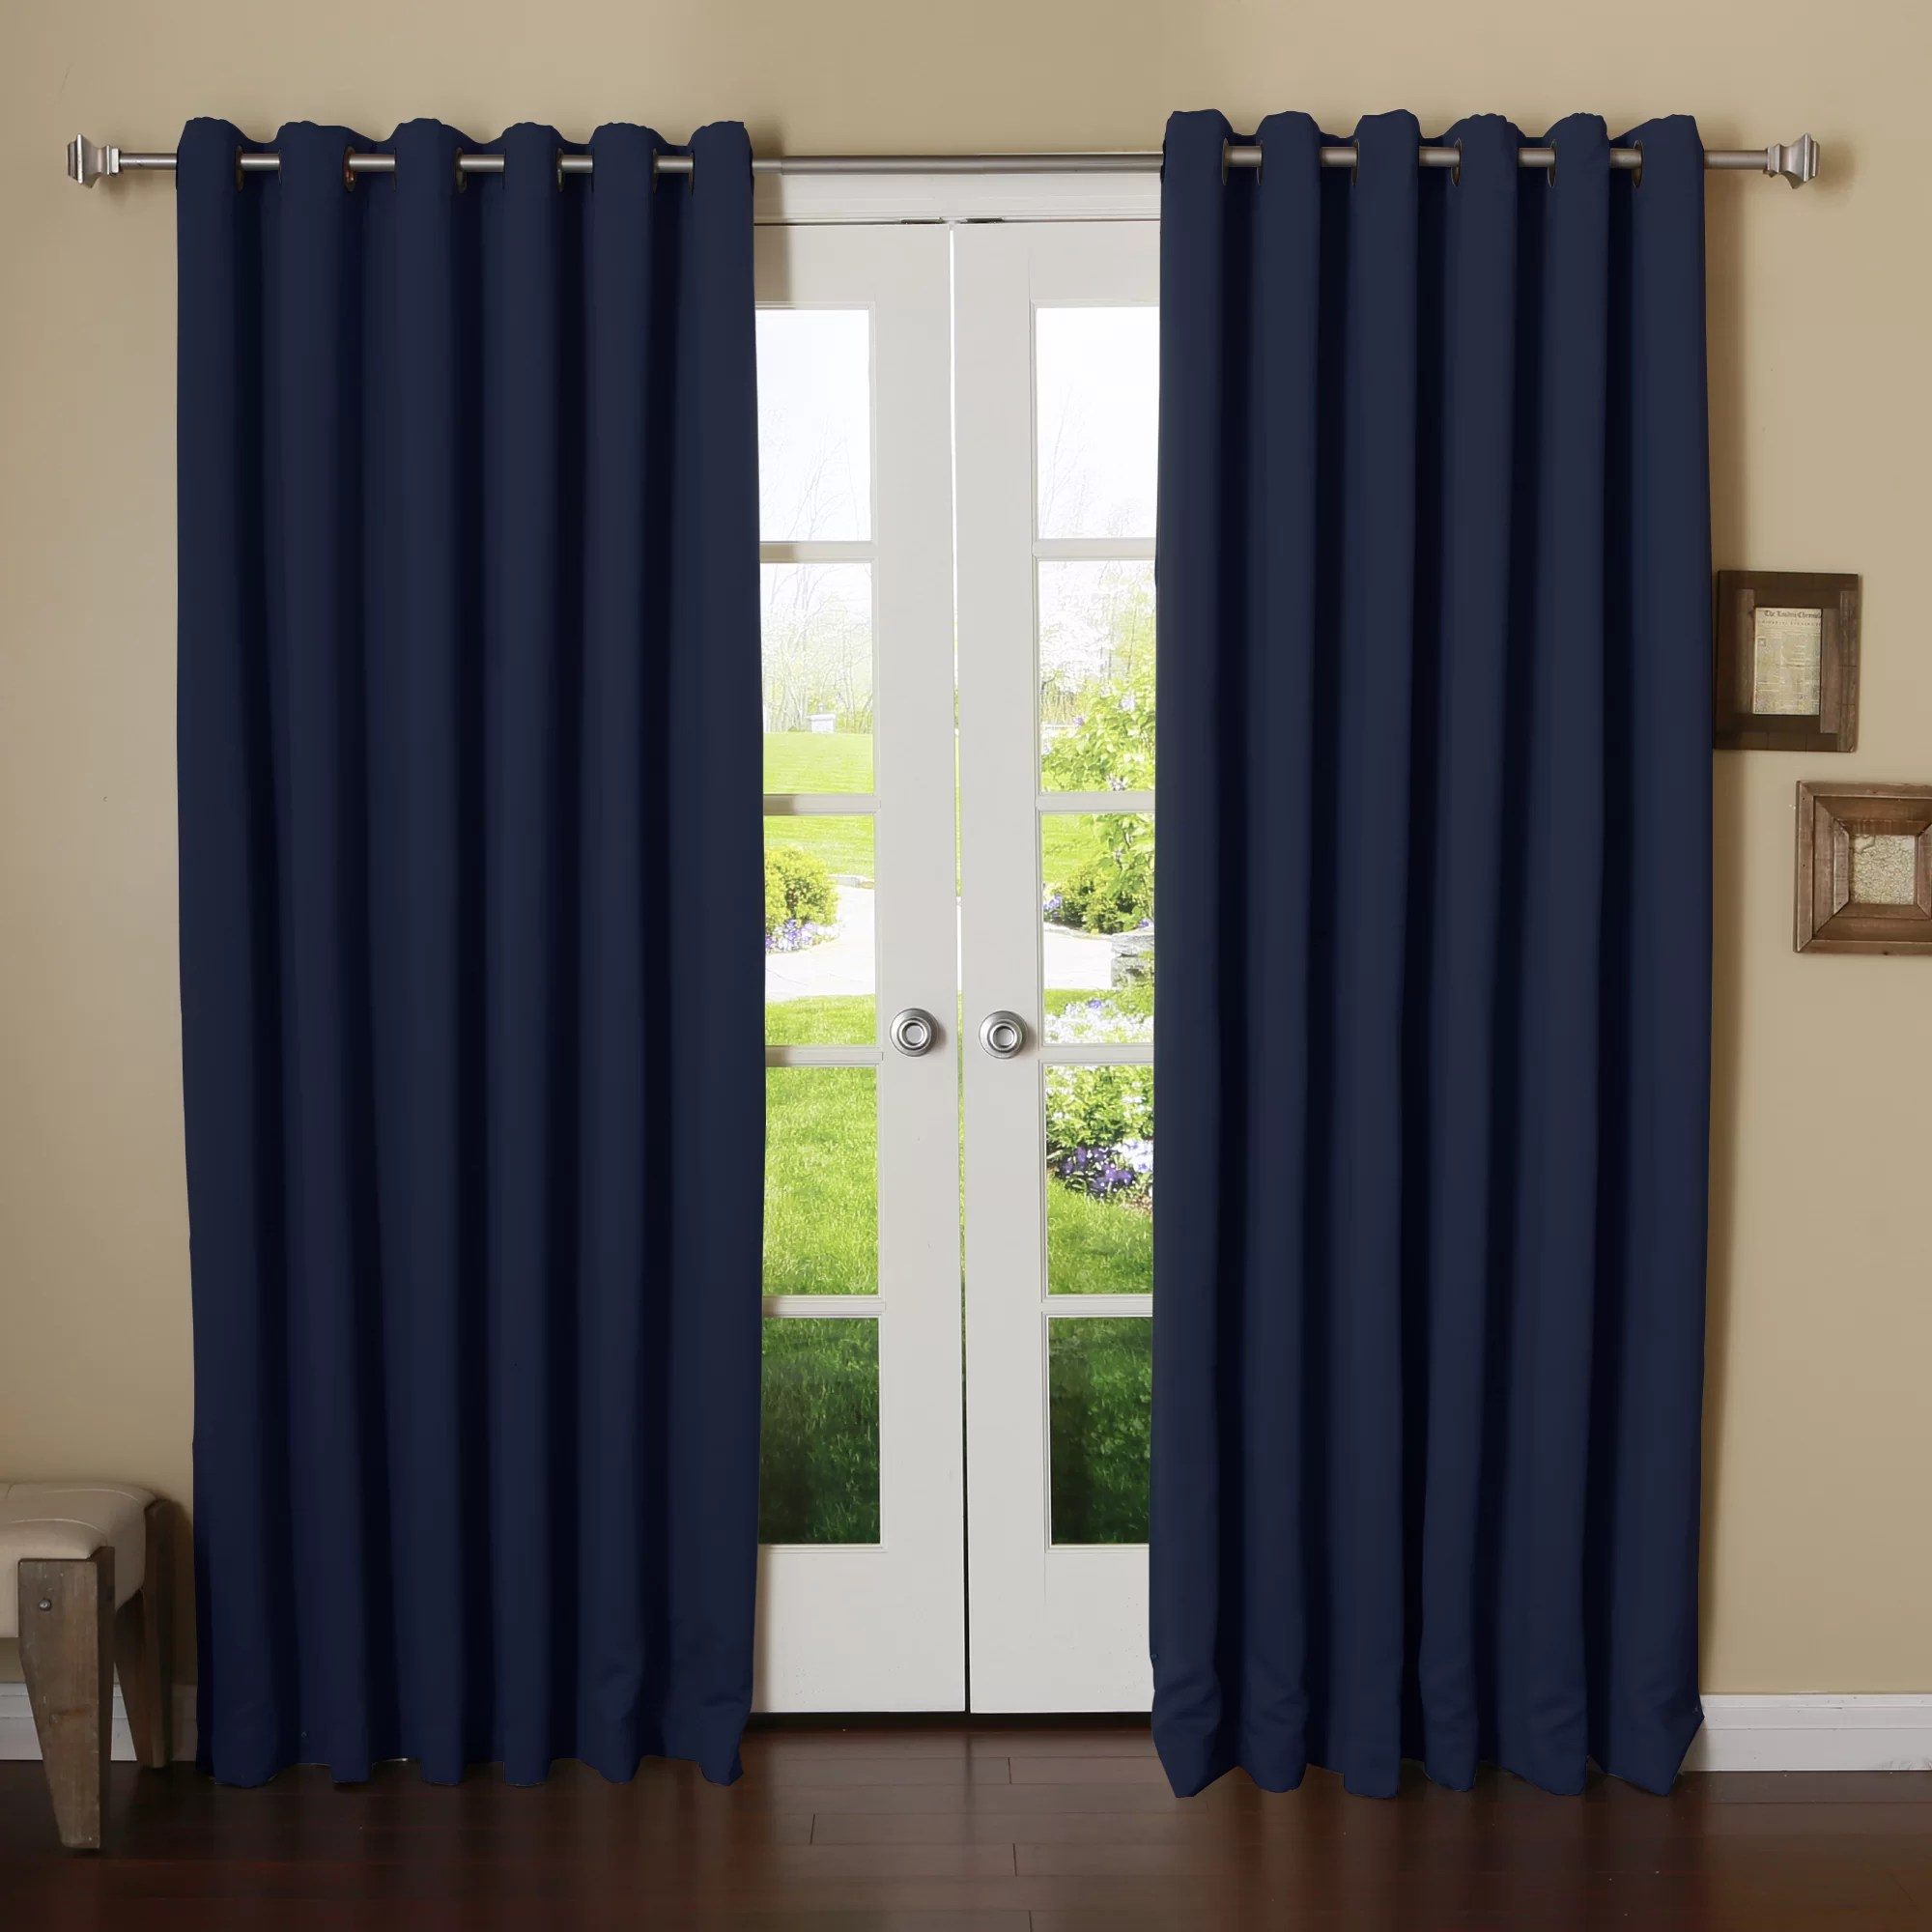 Best Home Fashion Inc Extra Wide Width Thermal Blackout Single Curtain Panel  Reviews  Wayfair